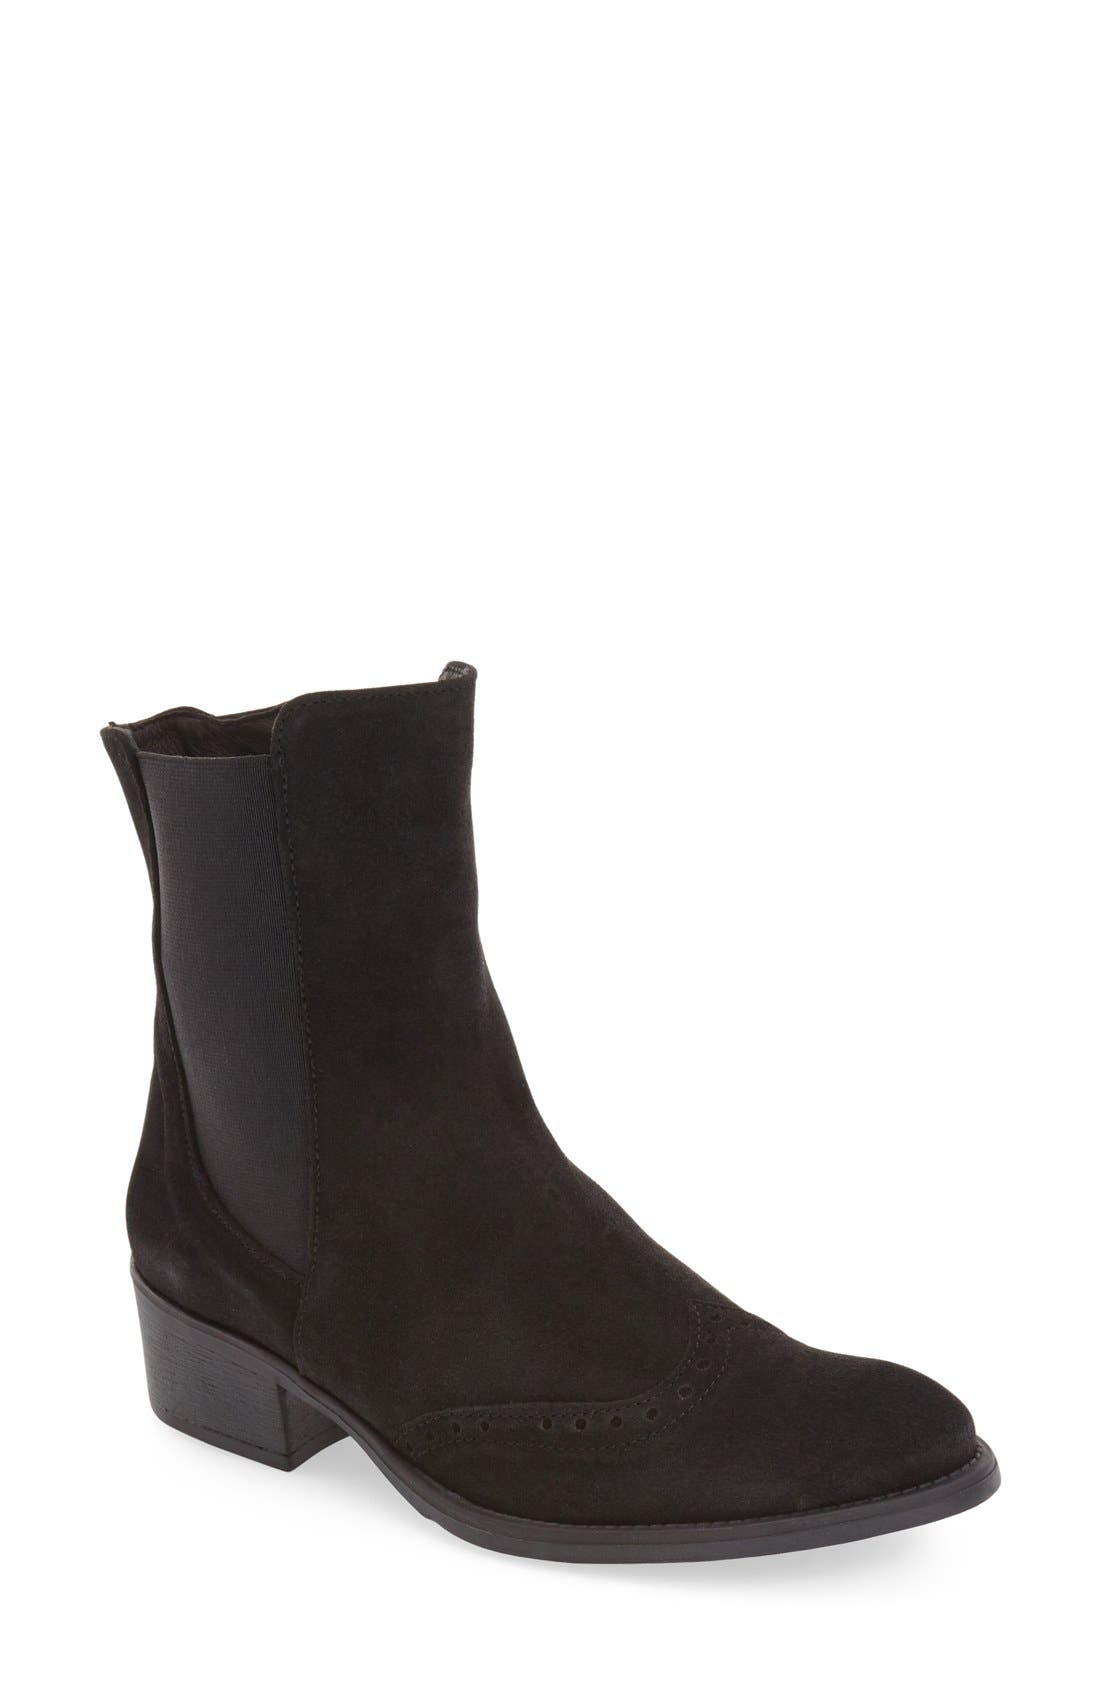 'Trieste' Chelsea Boot,                         Main,                         color,